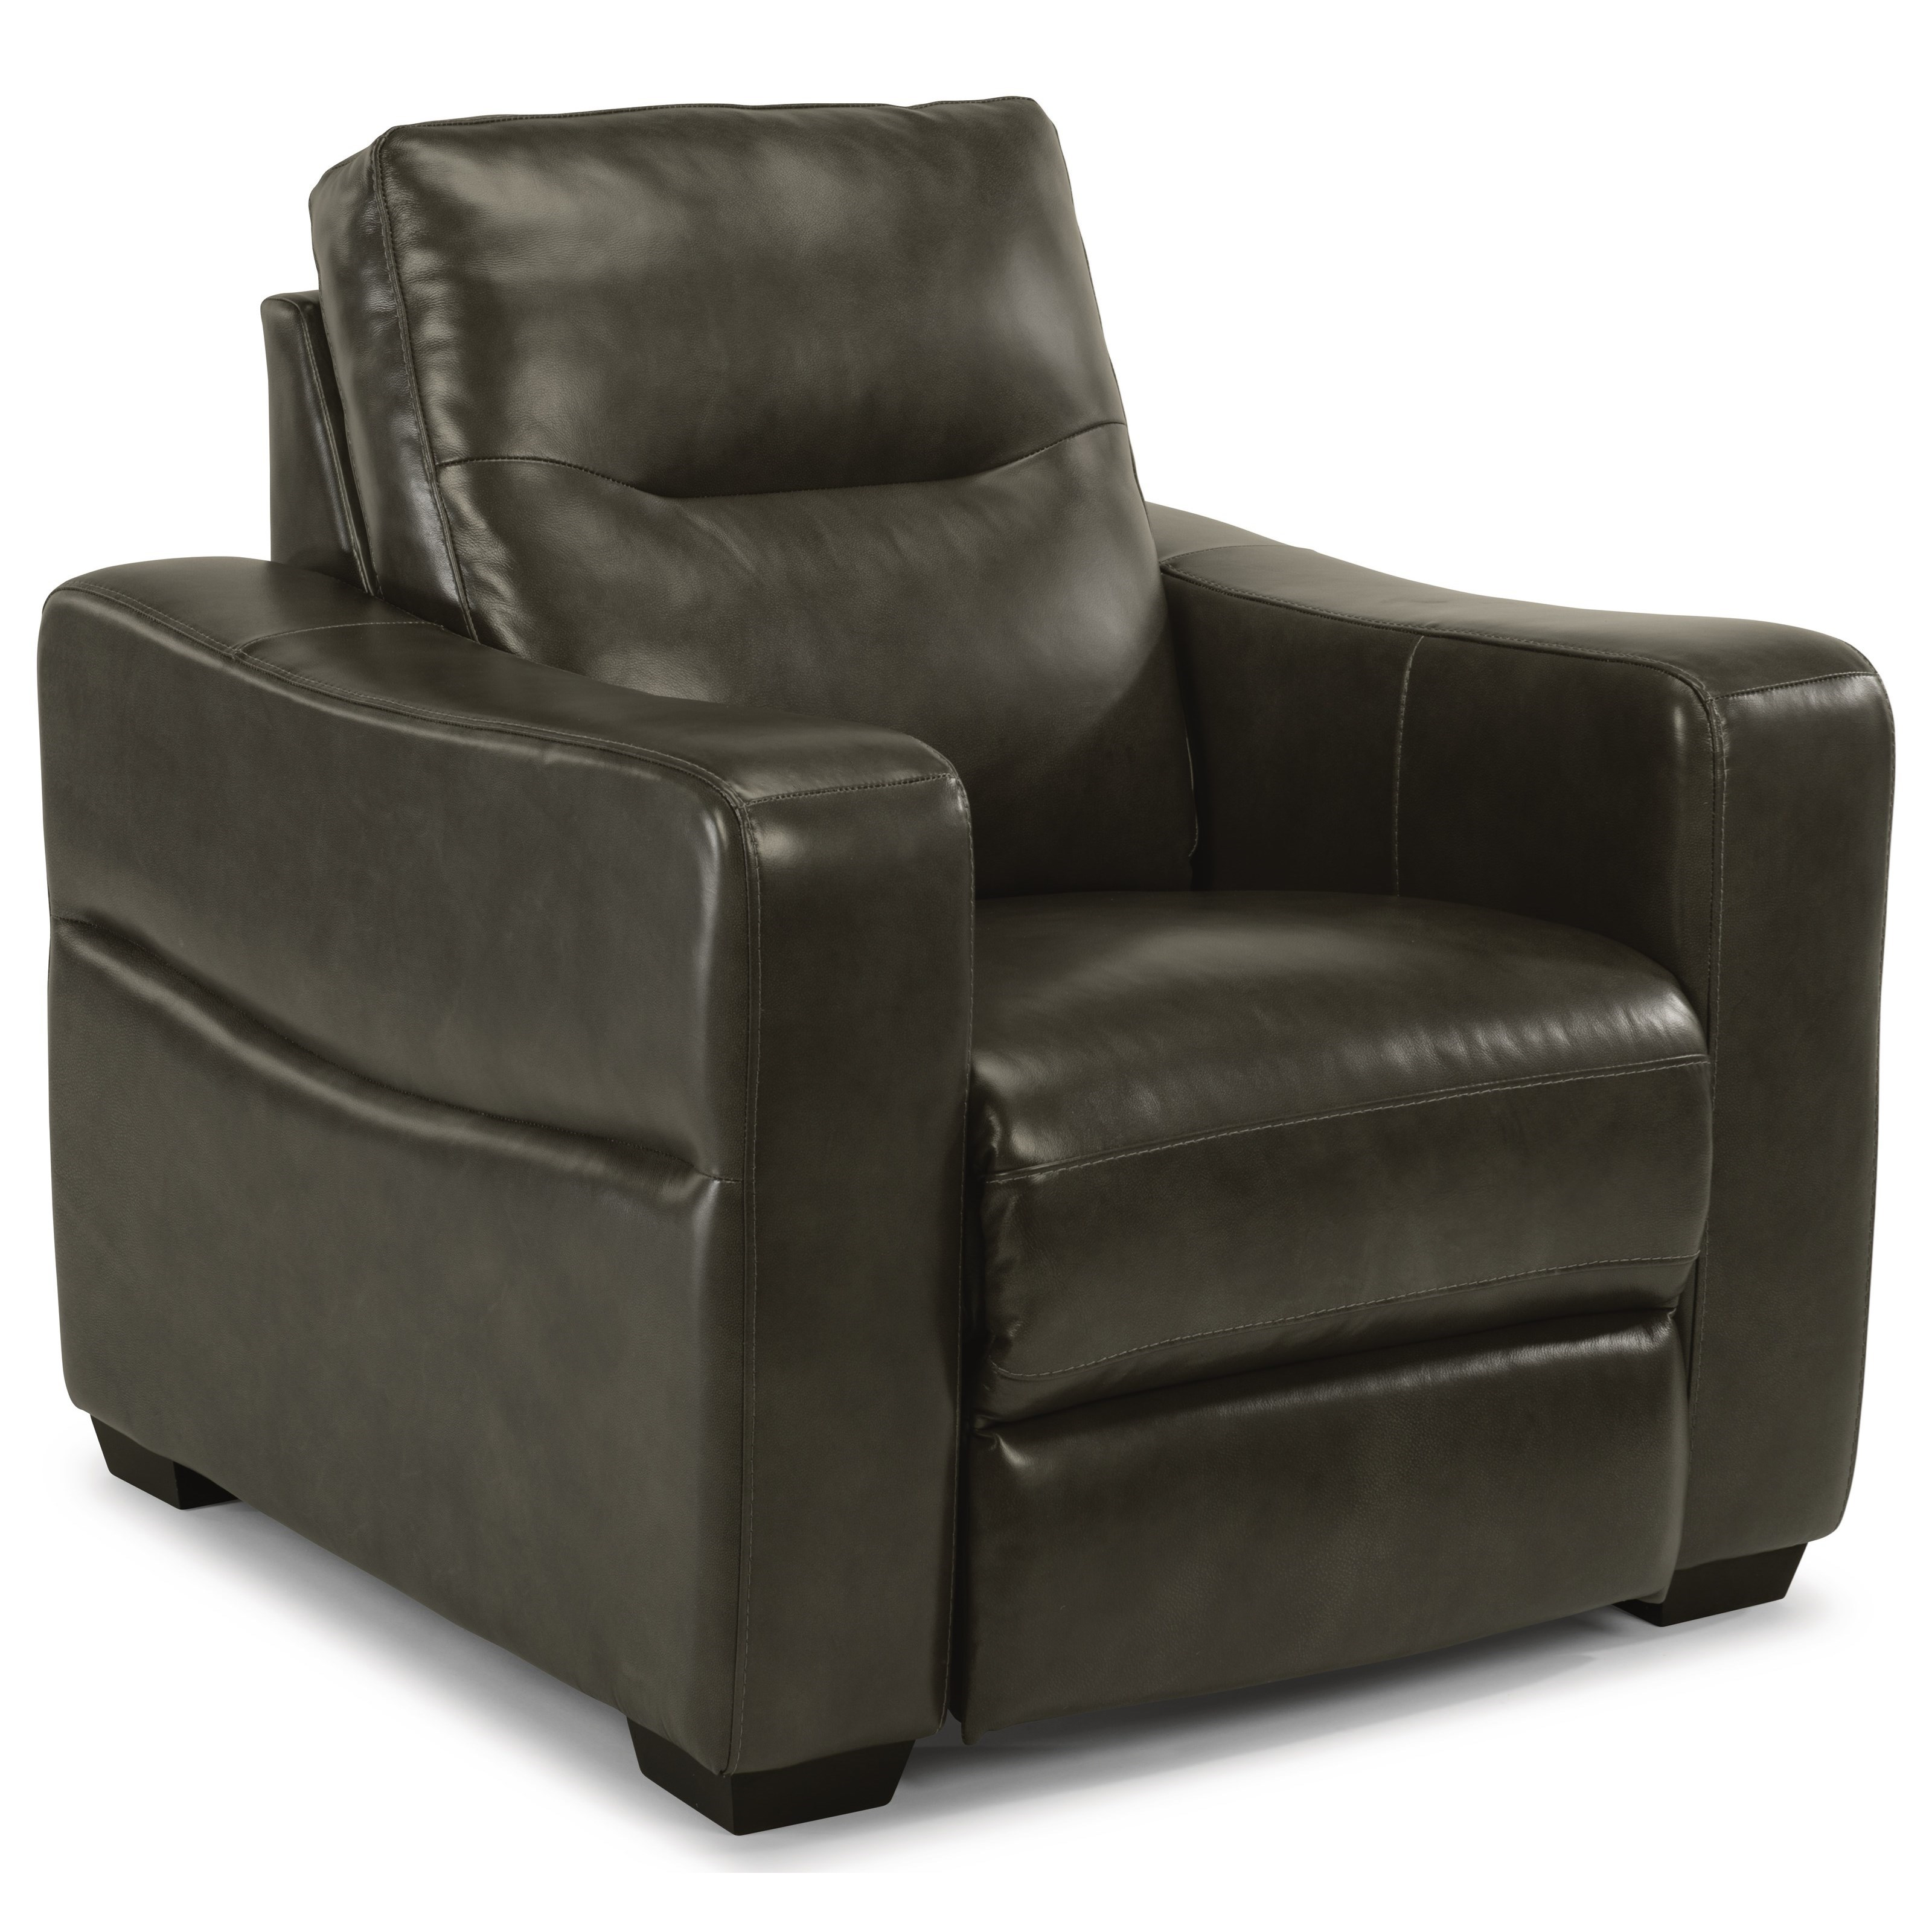 Latitudes - Monet Power Recliner by Flexsteel at Walker's Furniture